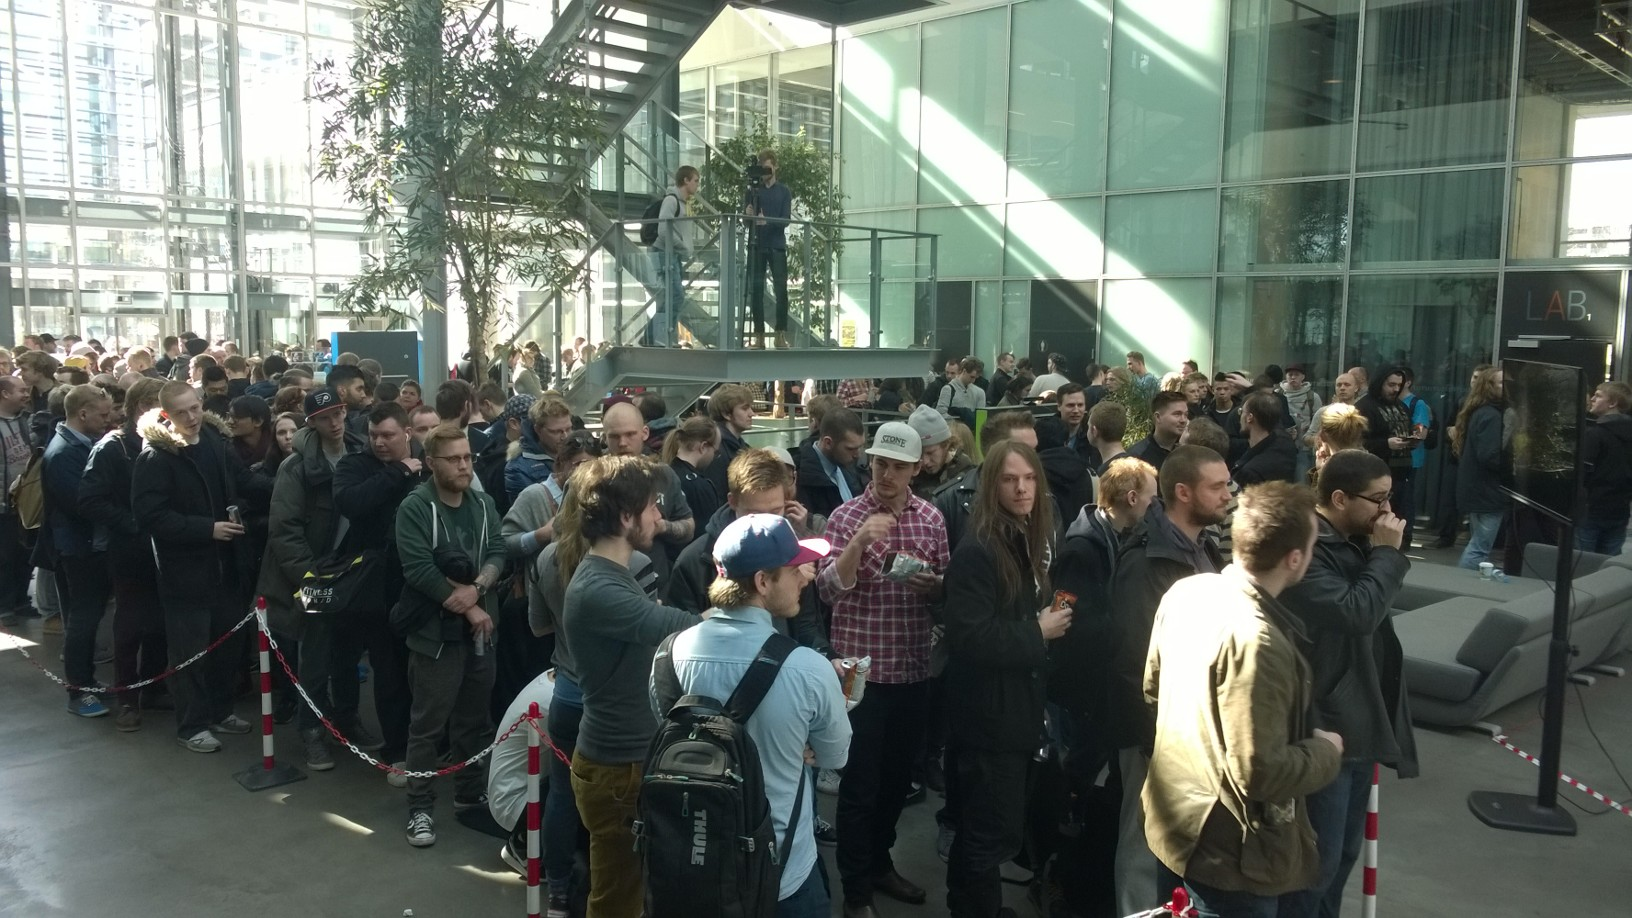 A rather long queue at the Bloodborne blood drive event, at IT University in Copenhagen.